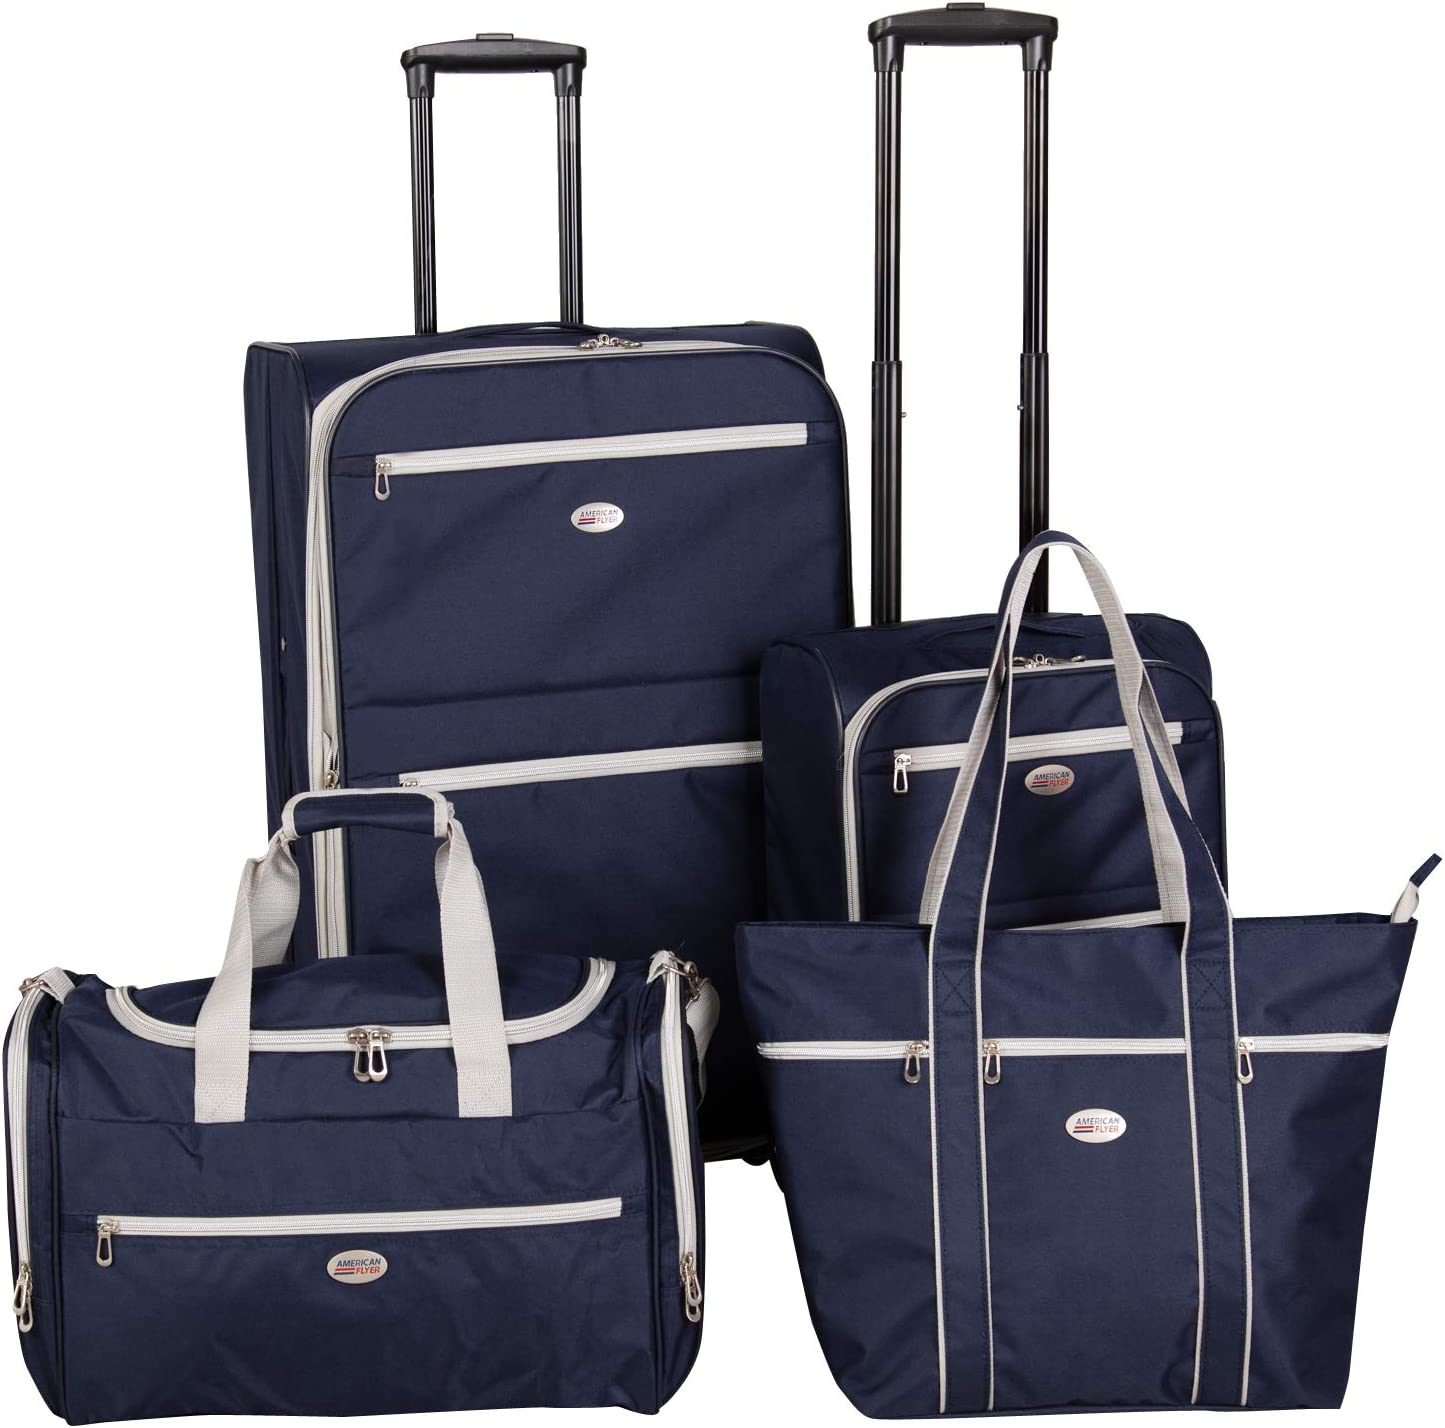 American Flyer Perfect 4-Piece Luggage Set, Navy